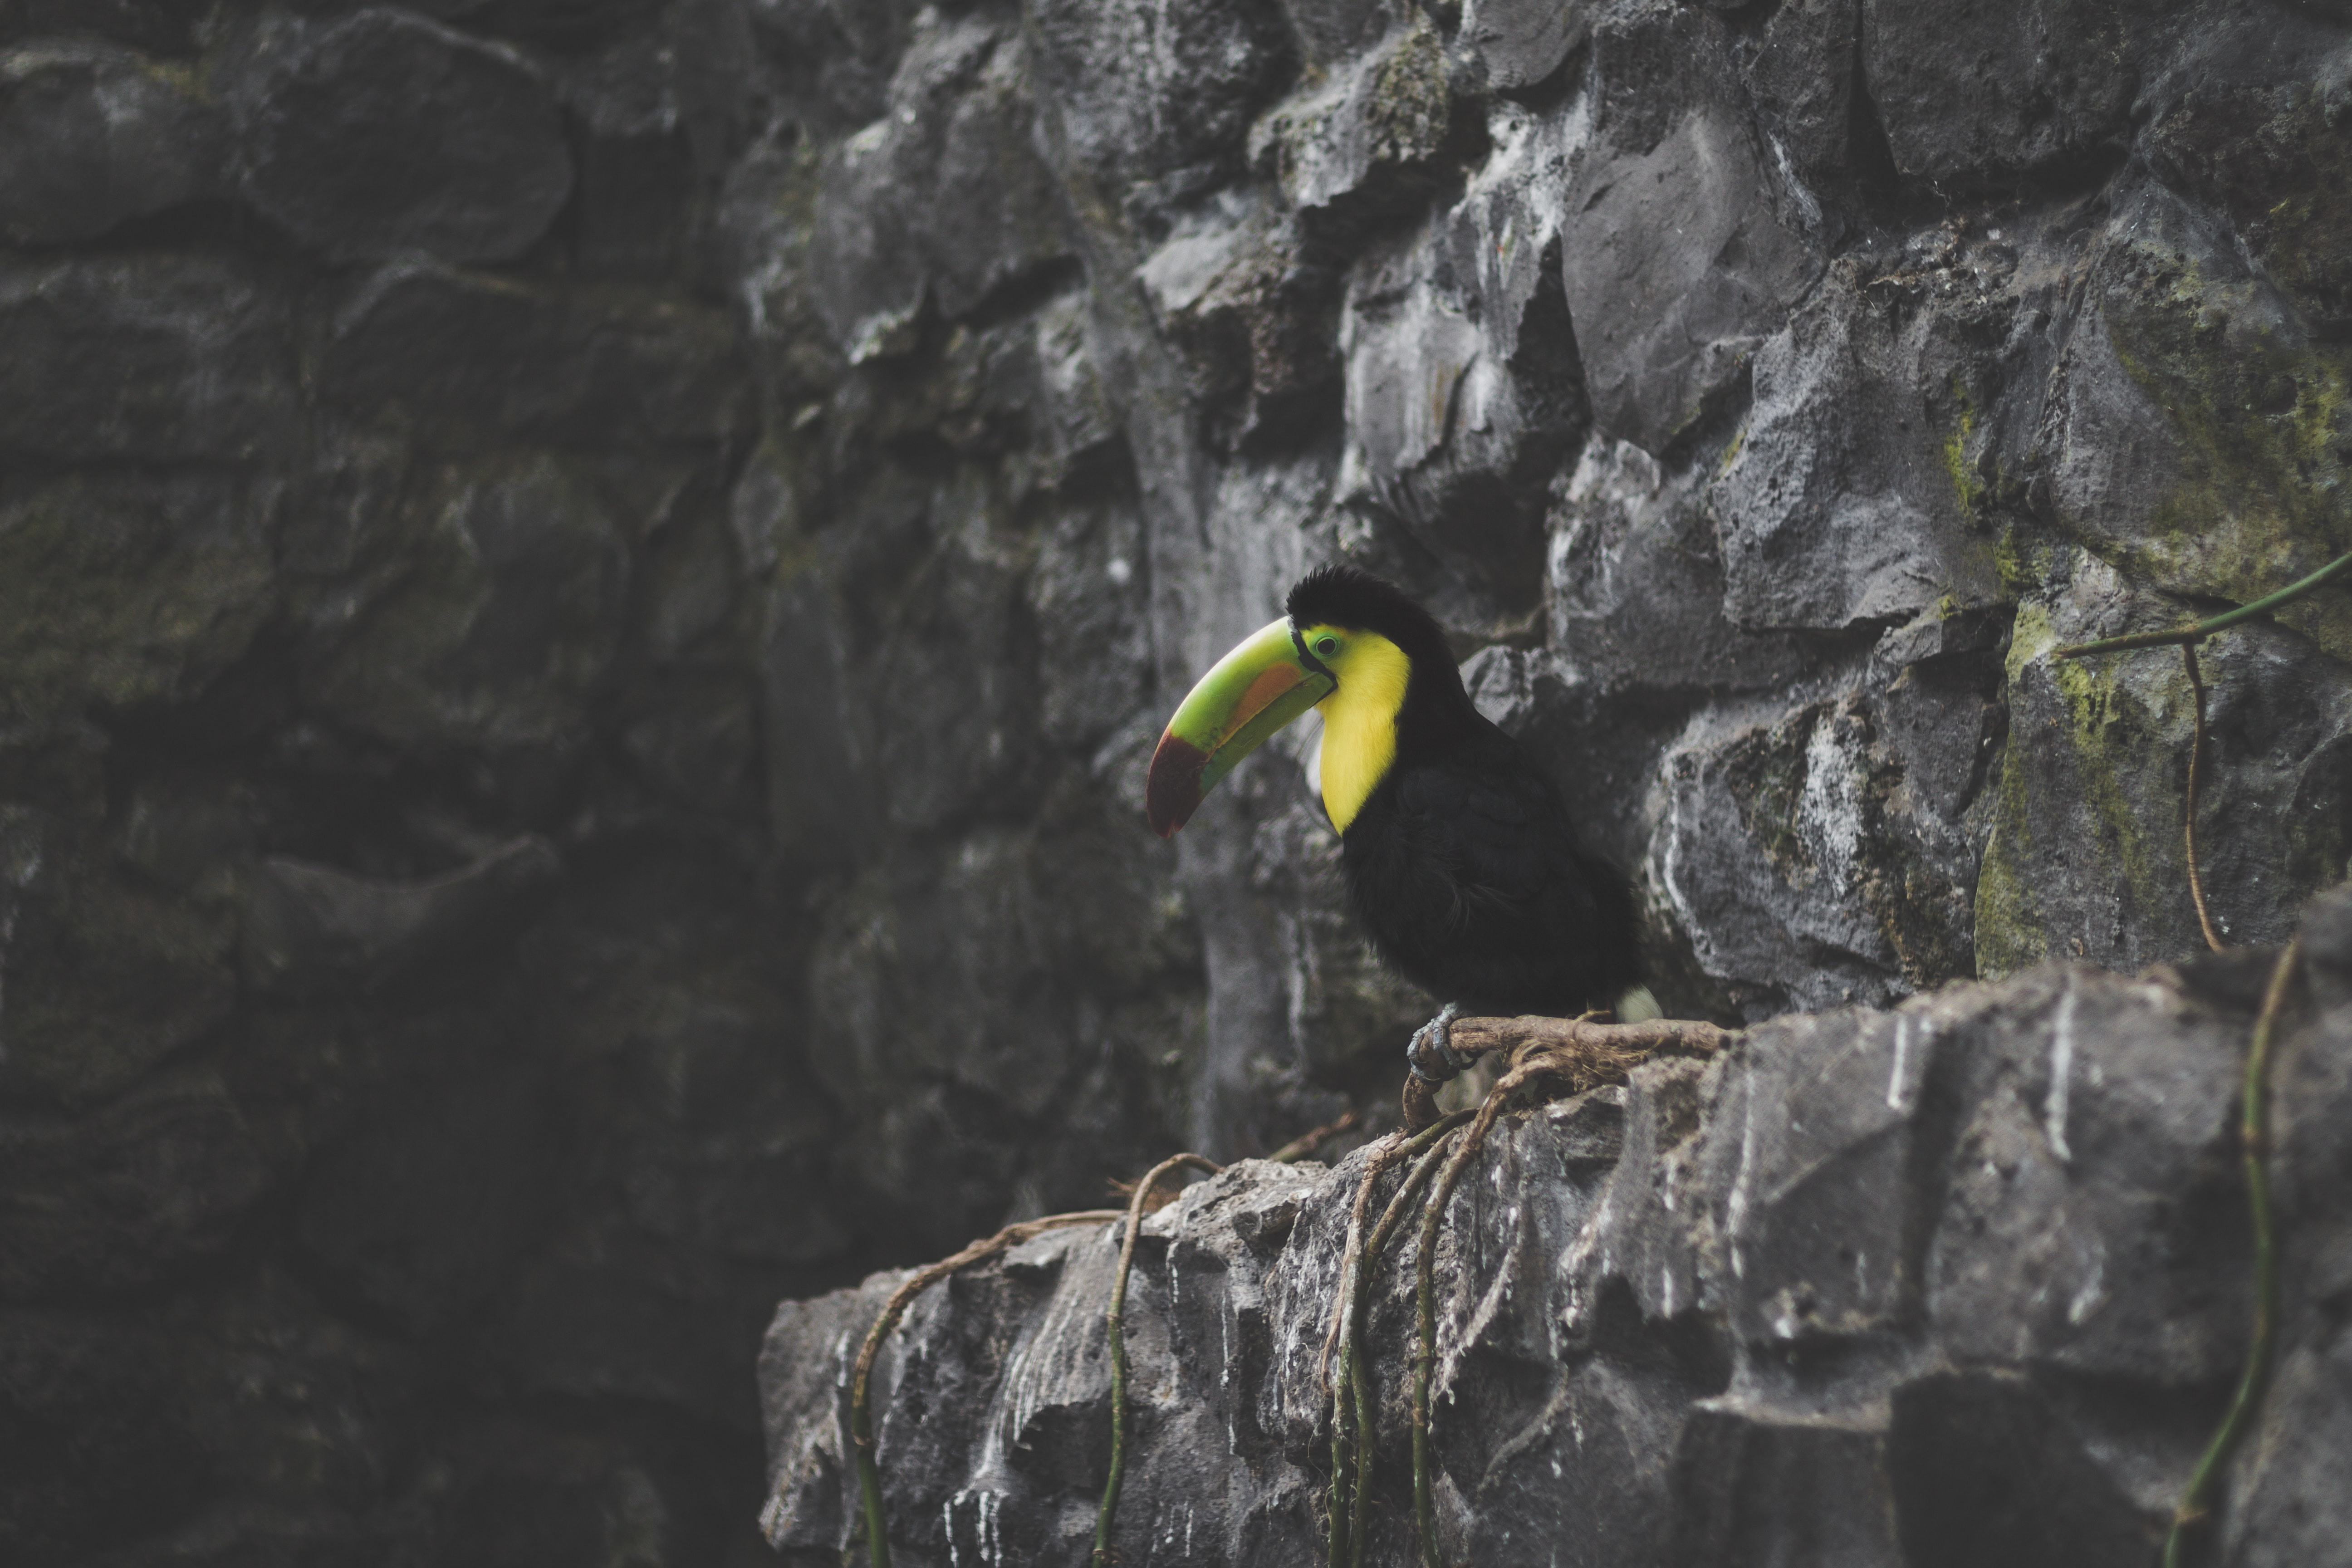 toucan on rock formation during daytime